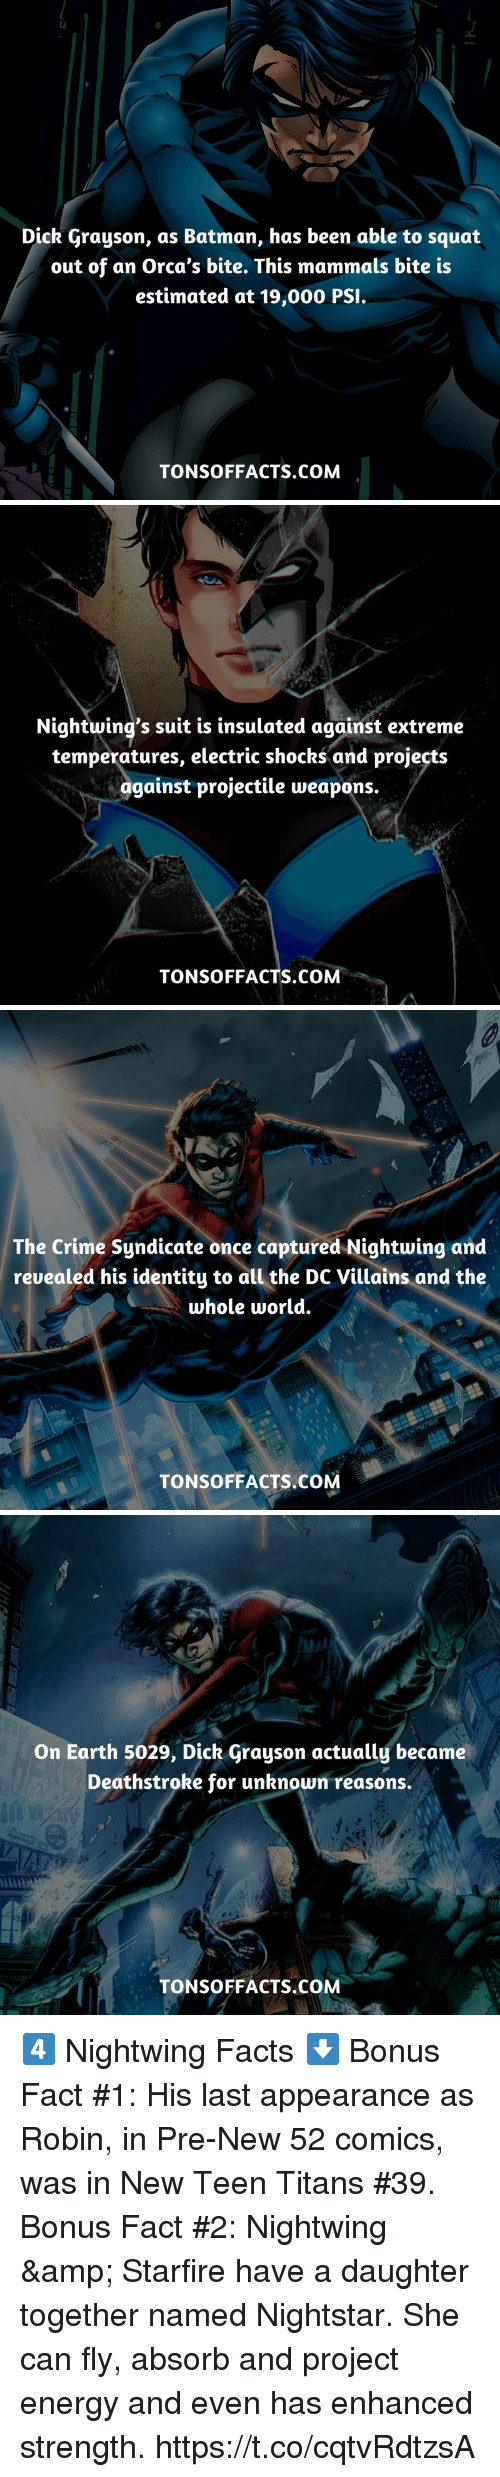 Batman, Crime, and Energy: Dick Grayson, as Batman, has been able to squat  out of an Orca's bite. This mammals bite is  estimated at 19,000 PSI  TONSOFFACTS.COM   Nightwing's suit is insulated against extreme  temperatures, electric shocks and projects  against projectile weapons.  TONSOFFACTS.COM   The Crime Syndicate once captured Nightwing and  reuealed his identity to all the DC Villains and the  whole world.  TONSOFFACTS.COM   On Earth 5029, Dick Grayson actually became  Deathstroke for unknown reasons.  TONSOFFACTS.COM 4️⃣ Nightwing Facts ⬇️  Bonus Fact #1: His last appearance as Robin, in Pre-New 52 comics, was in New Teen Titans #39.  Bonus Fact #2: Nightwing & Starfire have a daughter together named Nightstar. She can fly, absorb and project energy and even has enhanced strength. https://t.co/cqtvRdtzsA